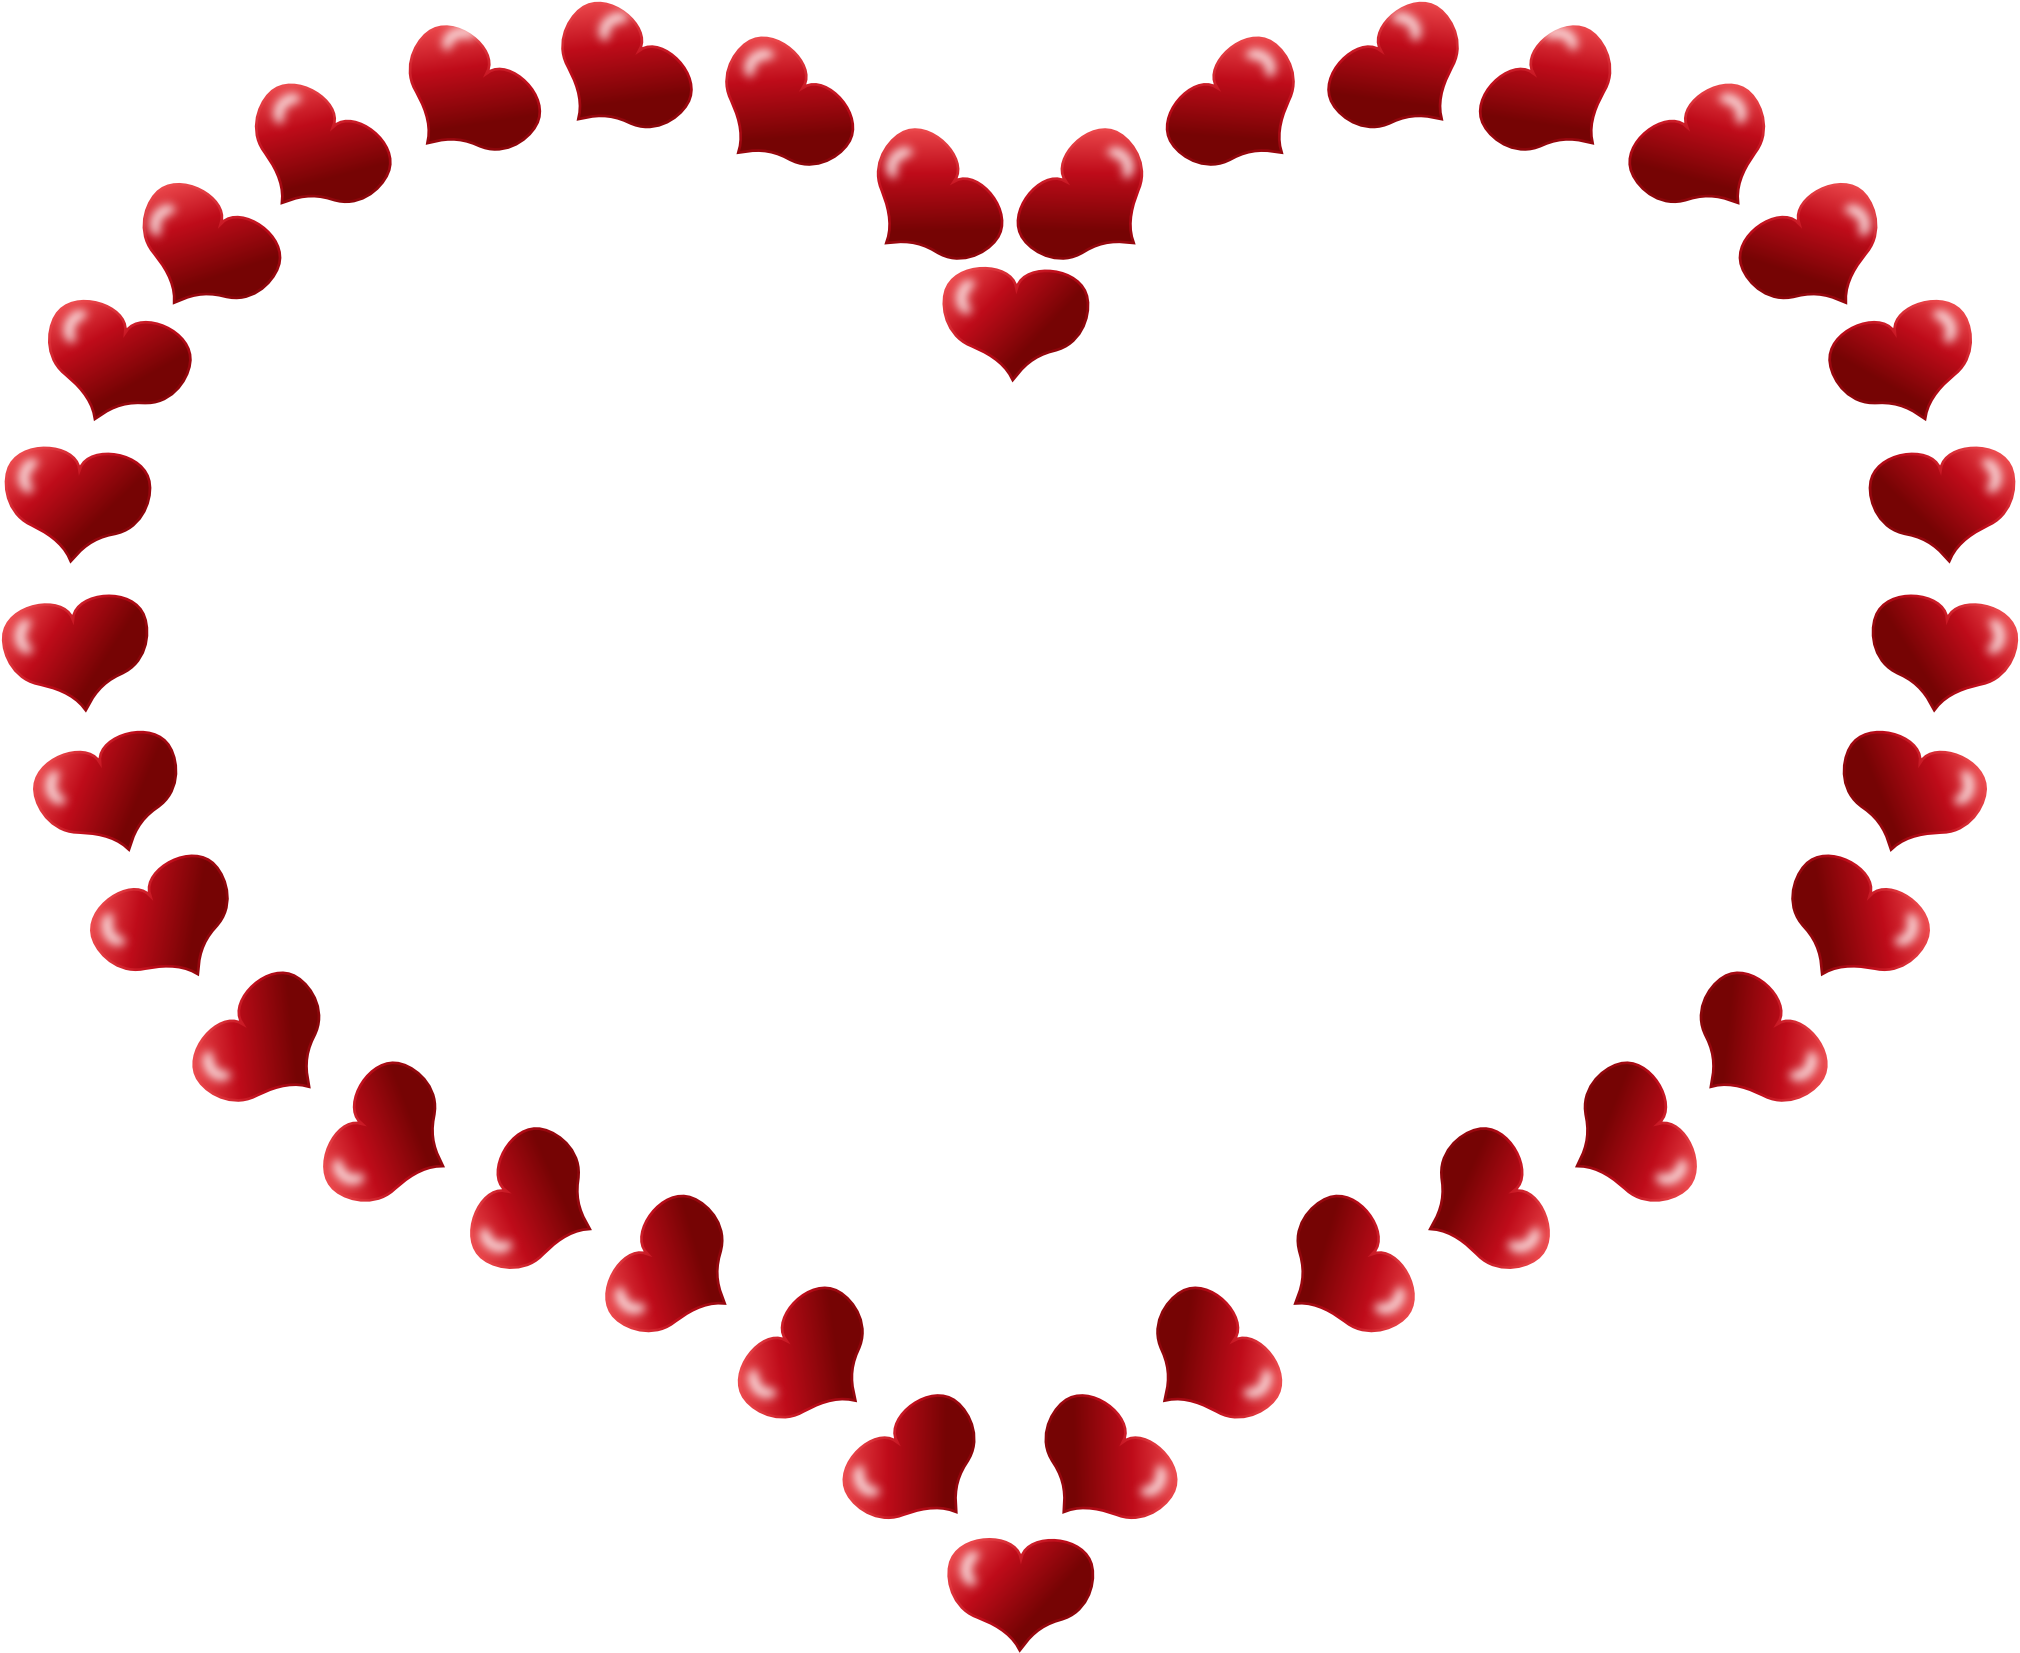 Heart border clip art free clipart images 2